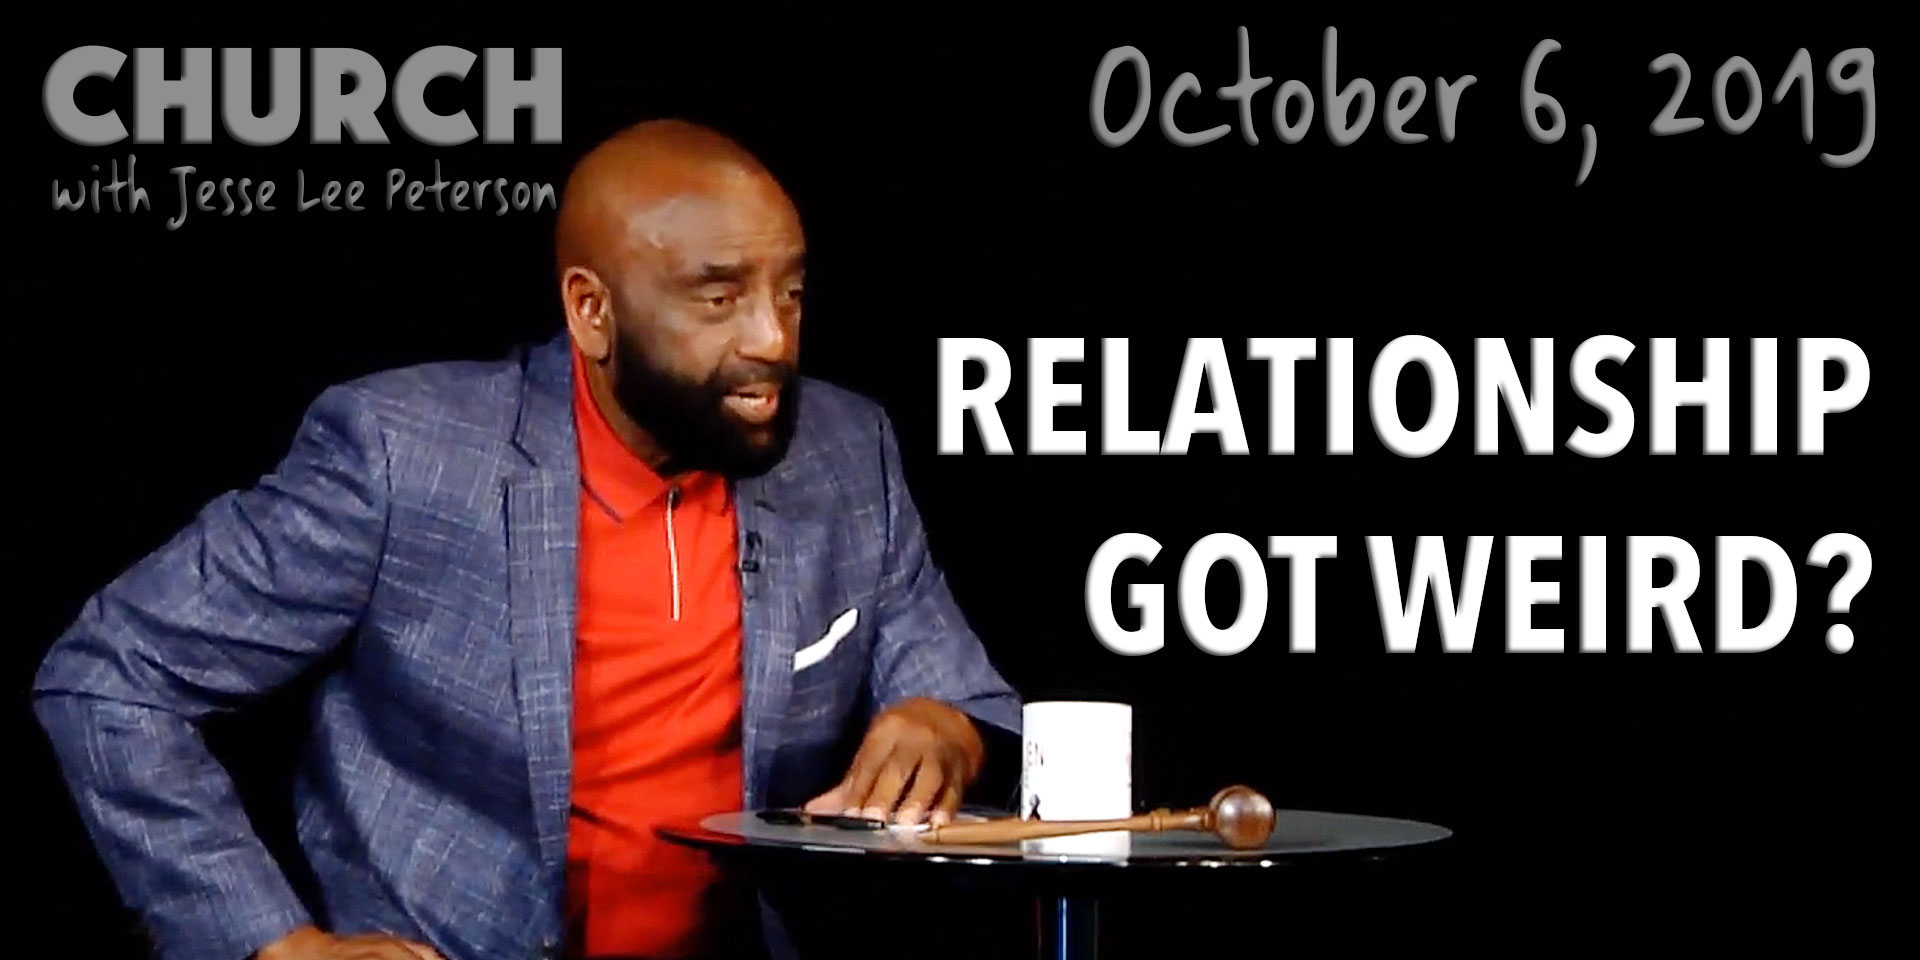 Relationship Got Weird? (Church, Oct 6, 2019)